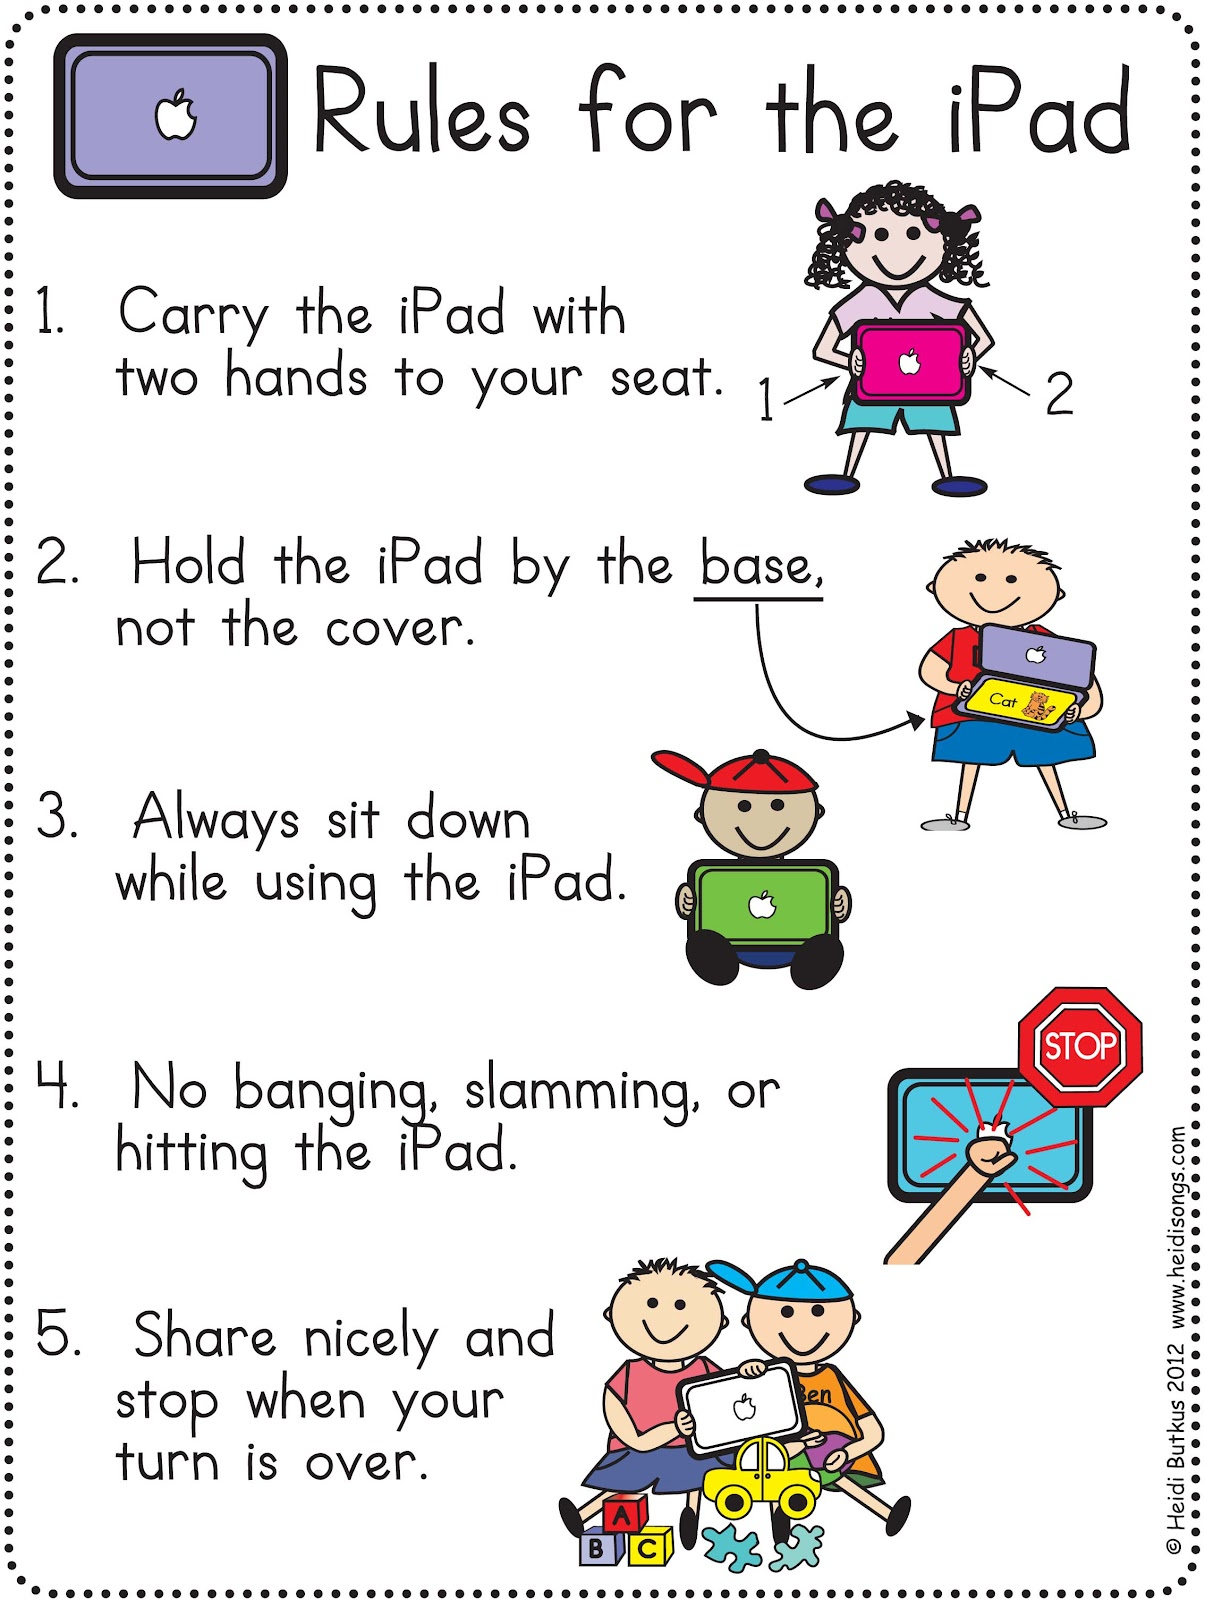 Rules for the iPad.jpg